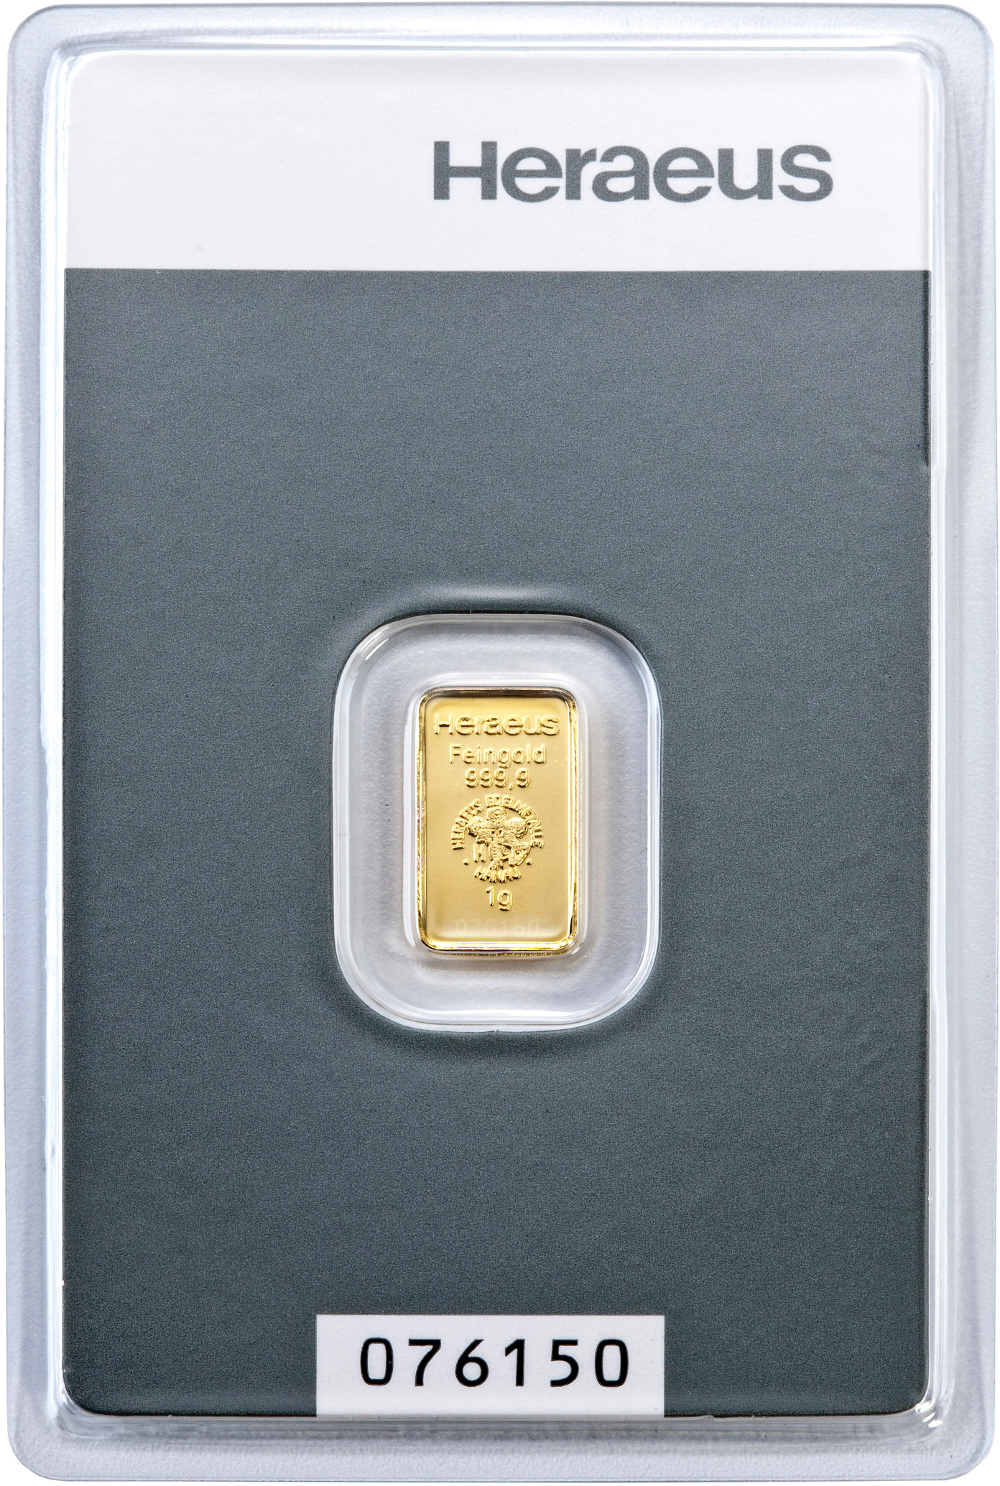 1g Heraeus Gold Bars Bullionbypost From 163 46